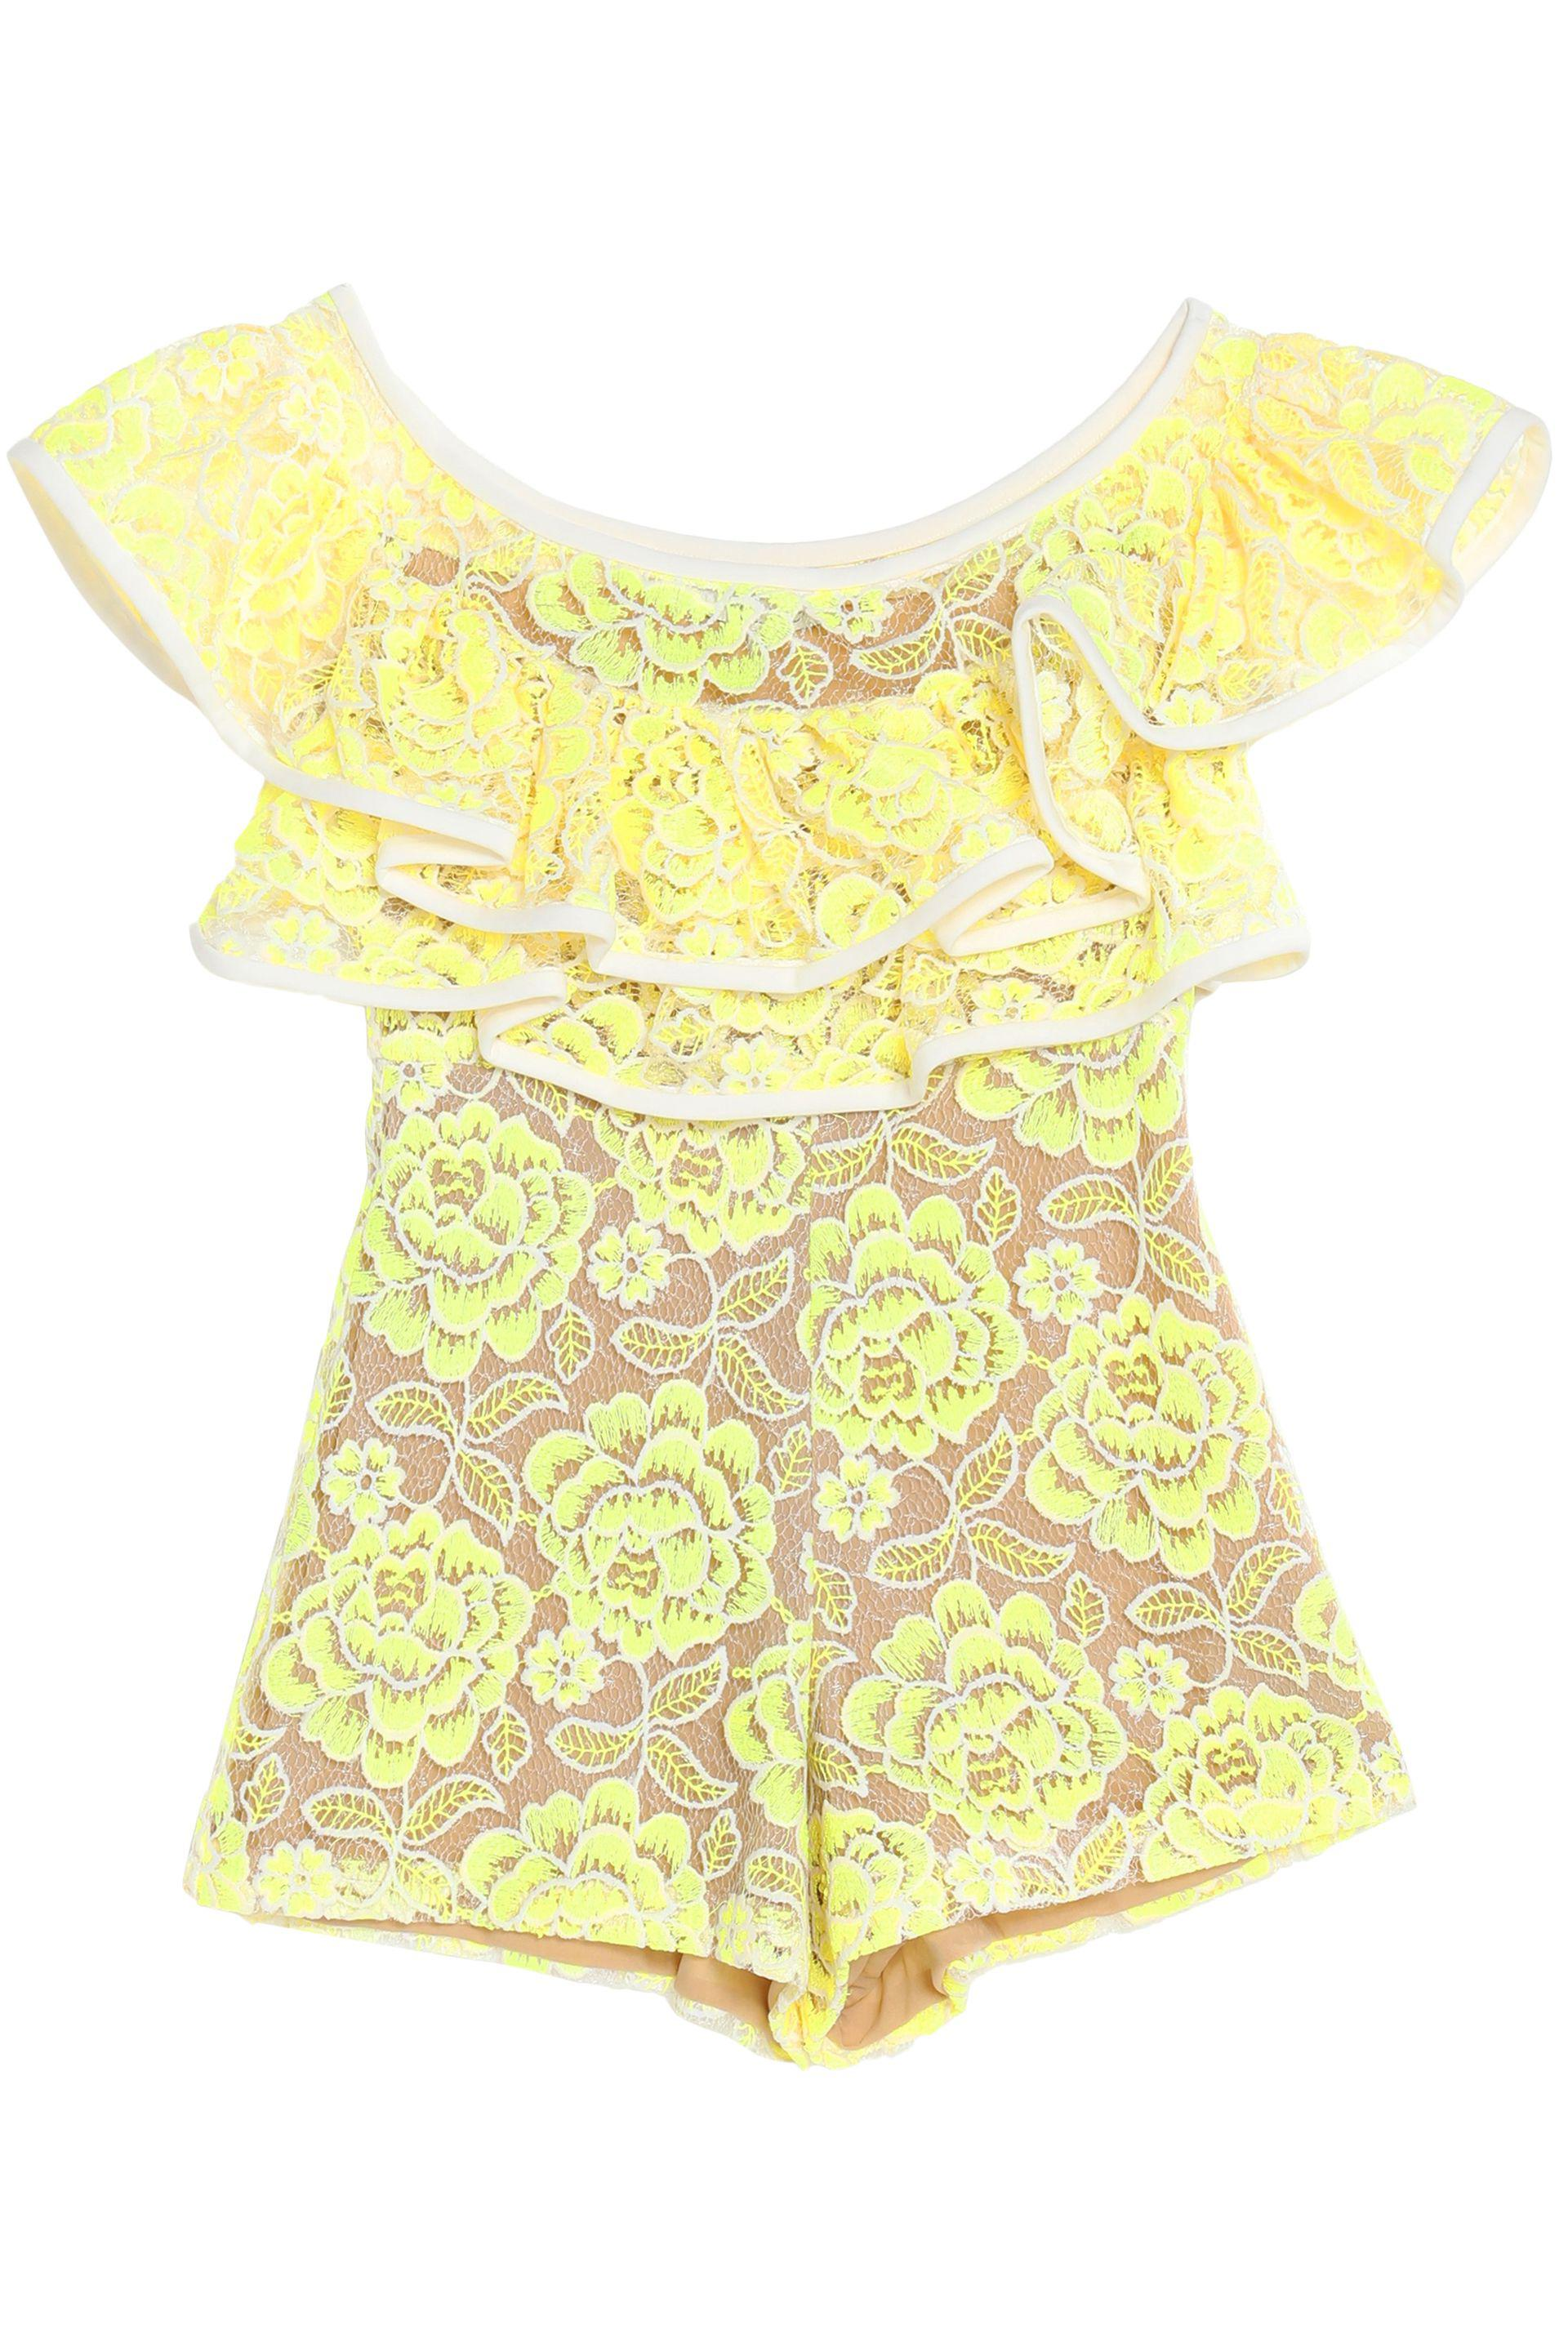 bcb46487fe Alexis Woman Off-the-shoulder Ruffled Guipure Lace Playsuit Yellow ...